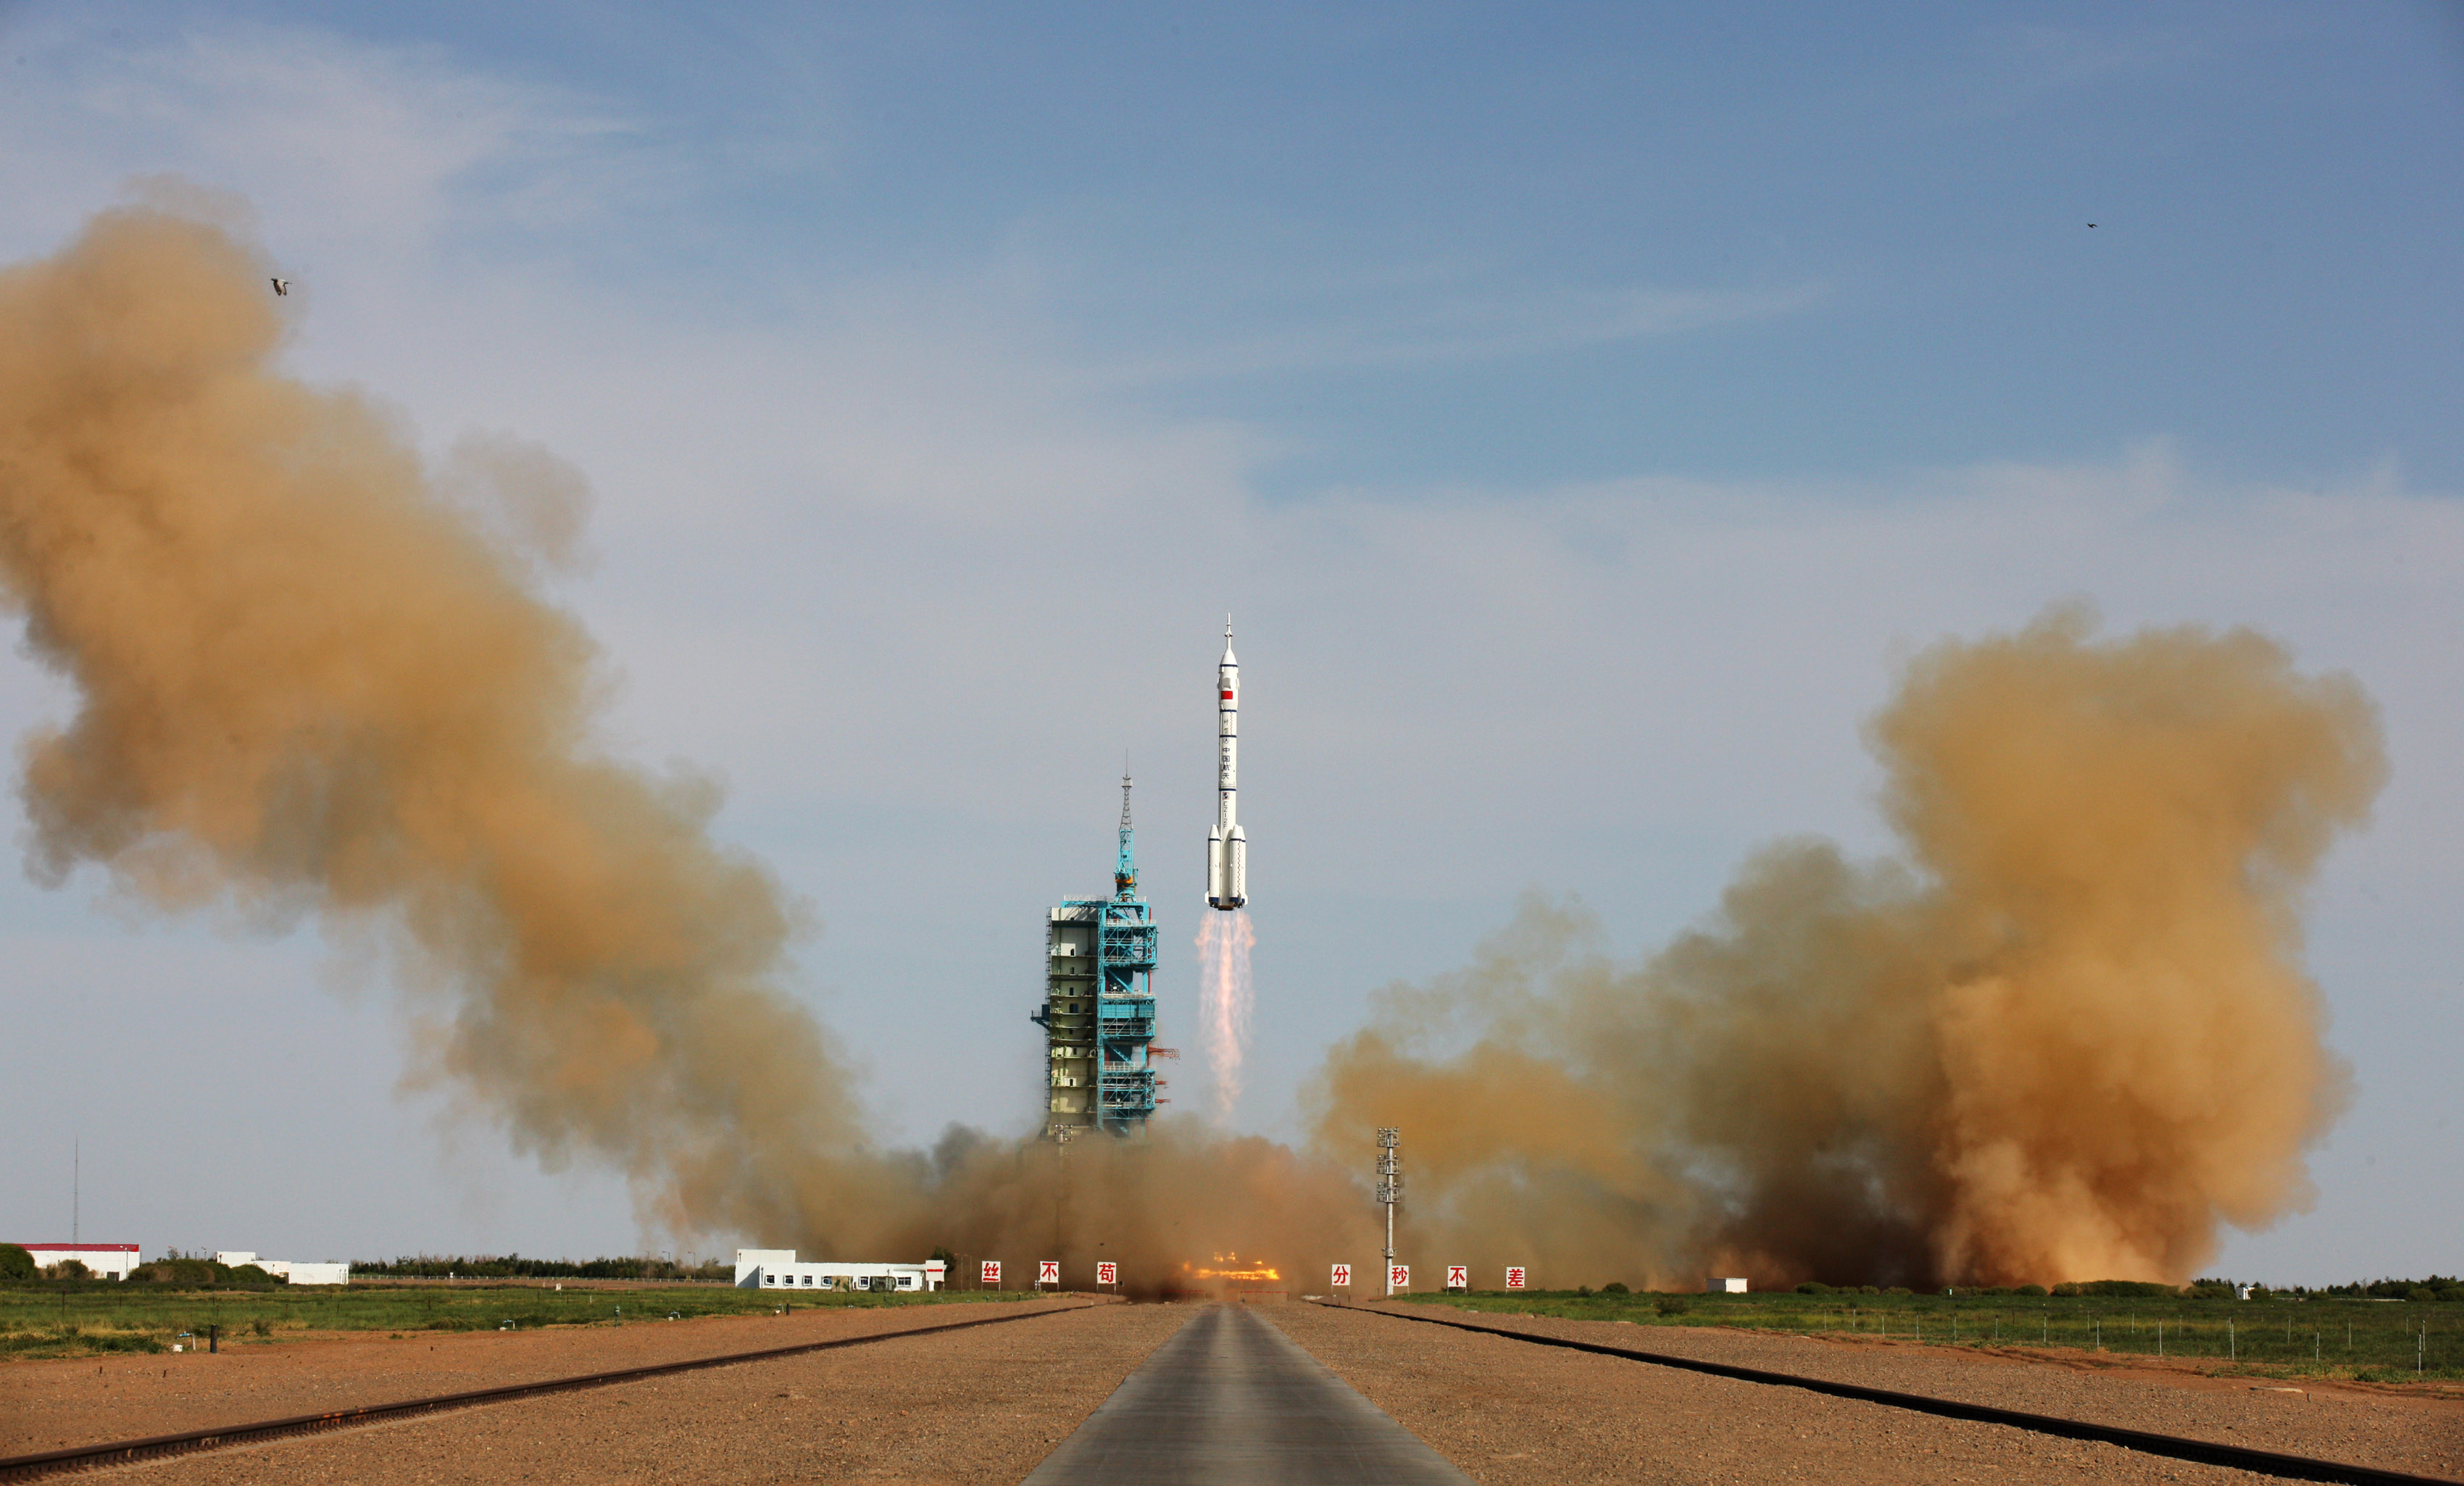 China Space Launches Shower Rocket Debris and Fuel Over Local Villages